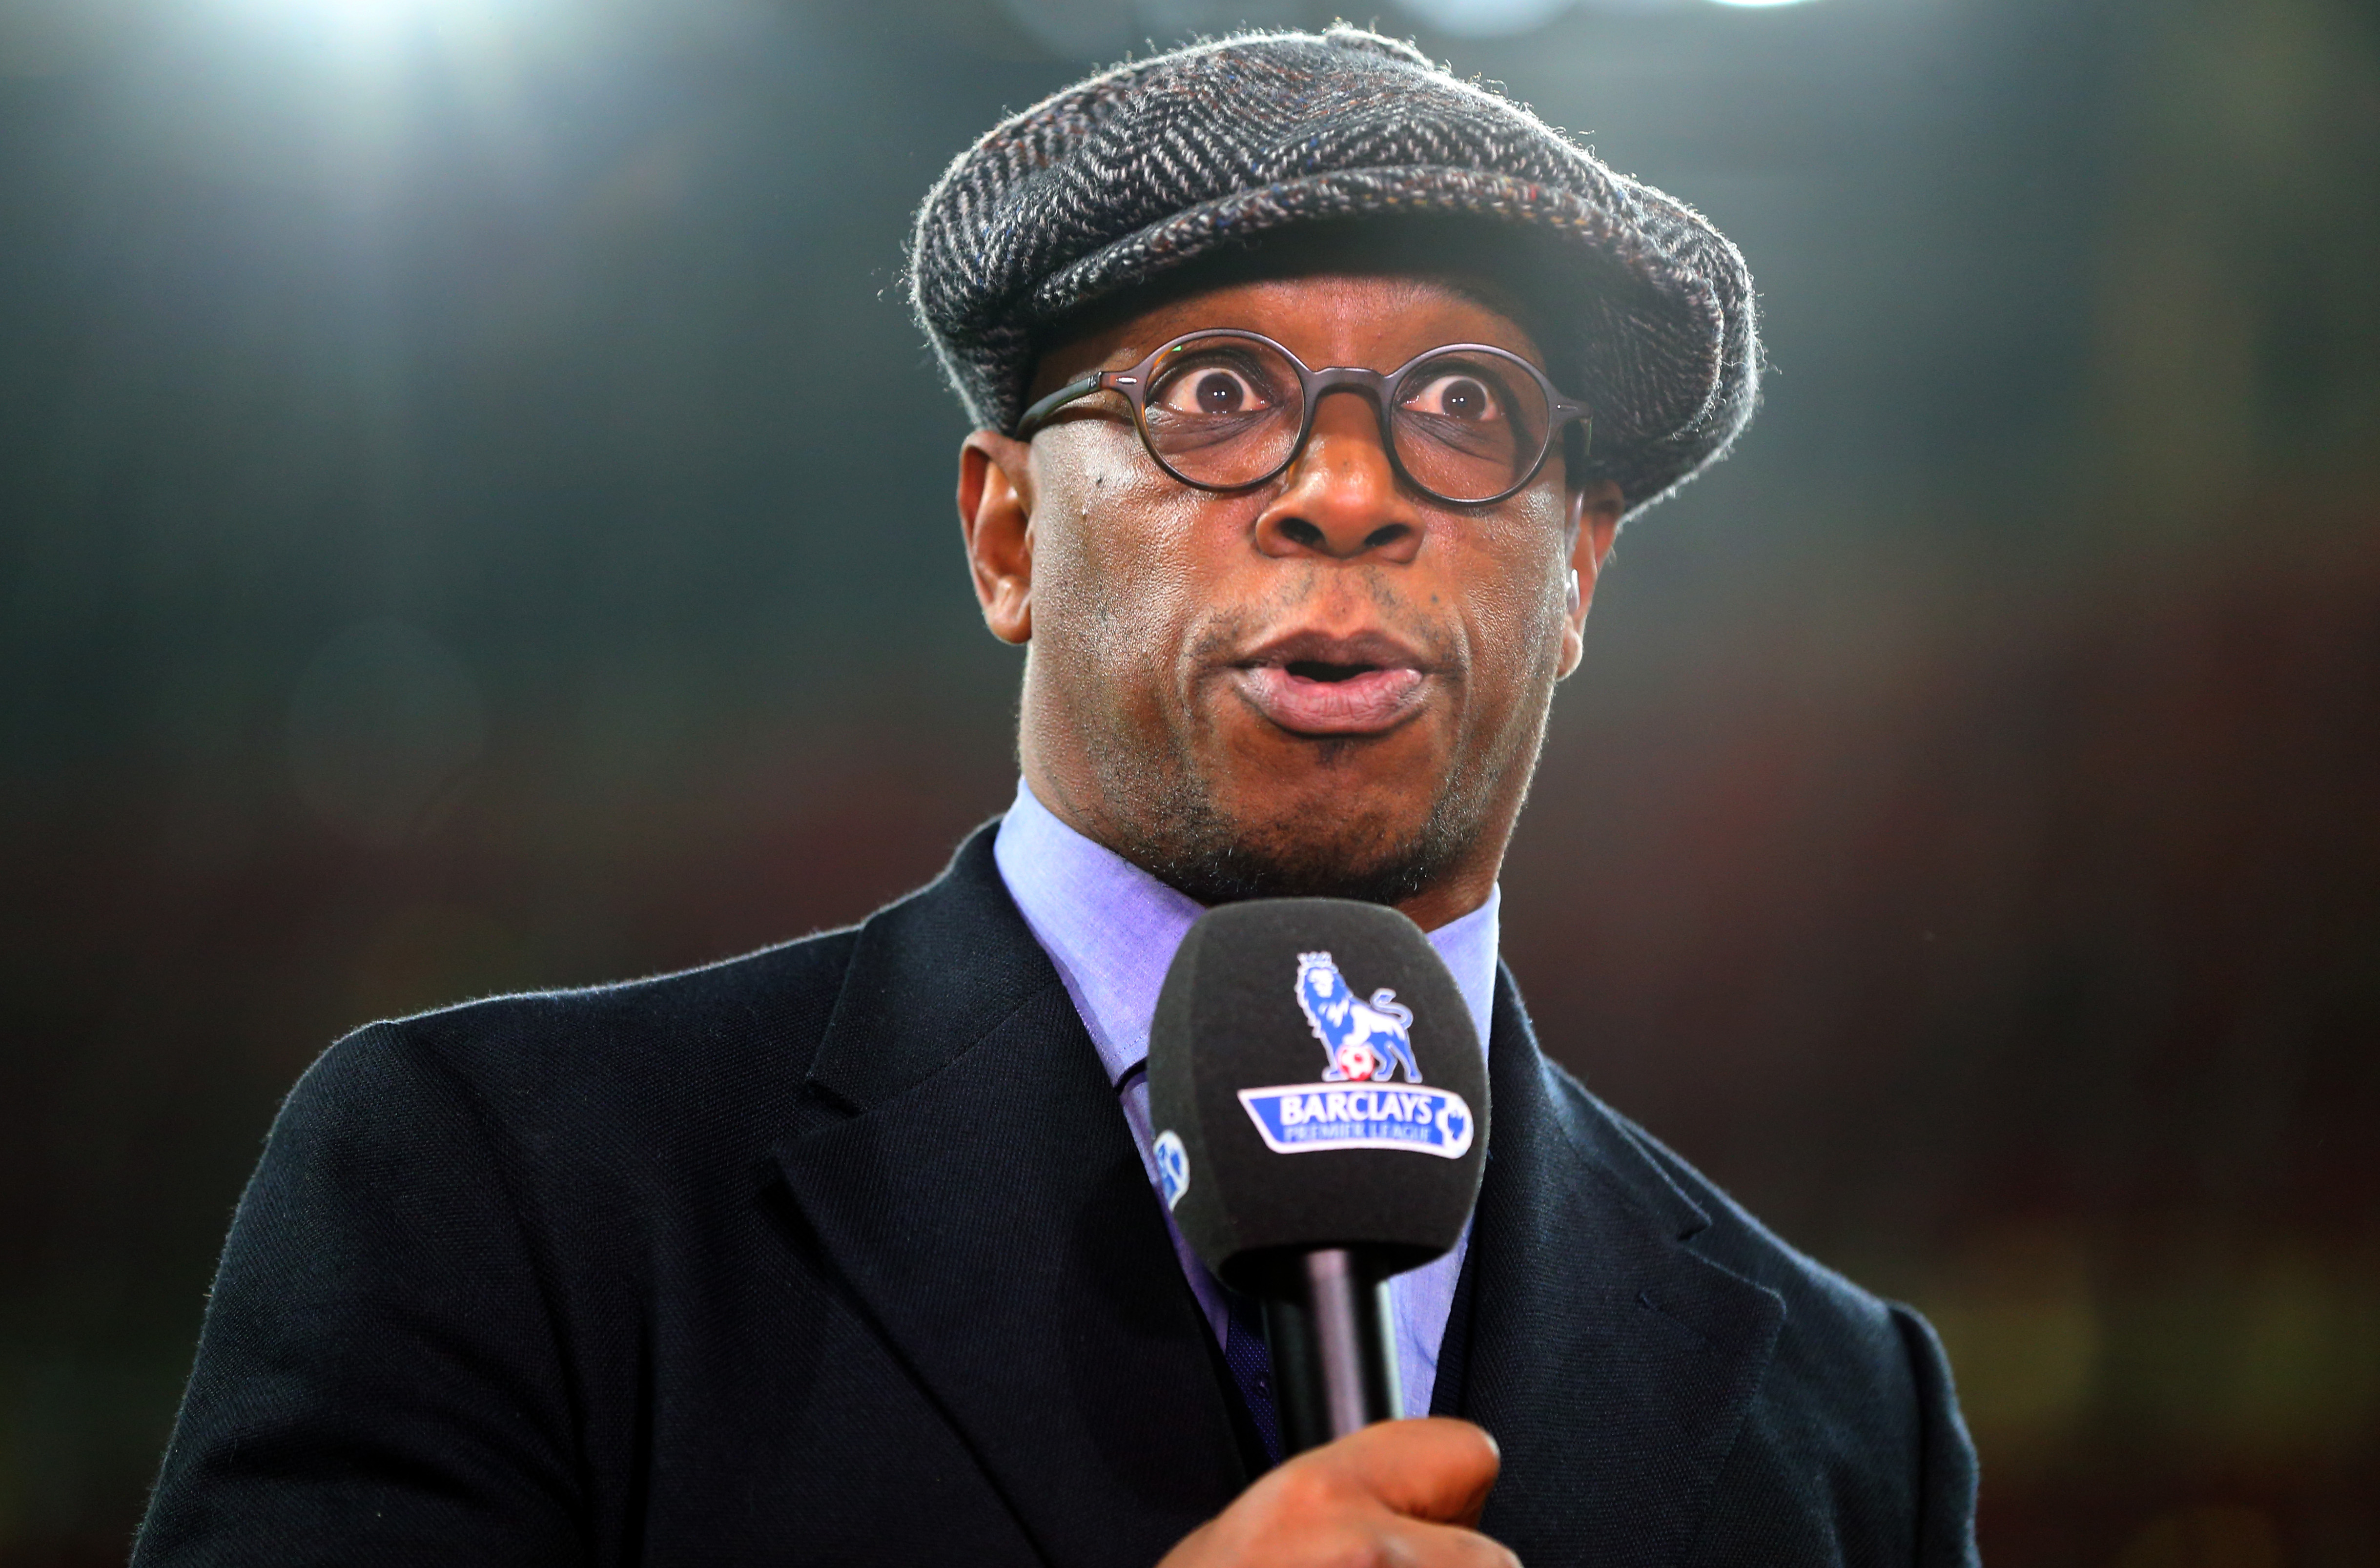 LONDON, ENGLAND - DECEMBER 21: Former Arsenal player Ian Wright before the Barclays Premier League match between Arsenal and Manchester City at the Emirates Stadium on December 21, 2015 in London, England. (Photo by Catherine Ivill - AMA/Getty Images)